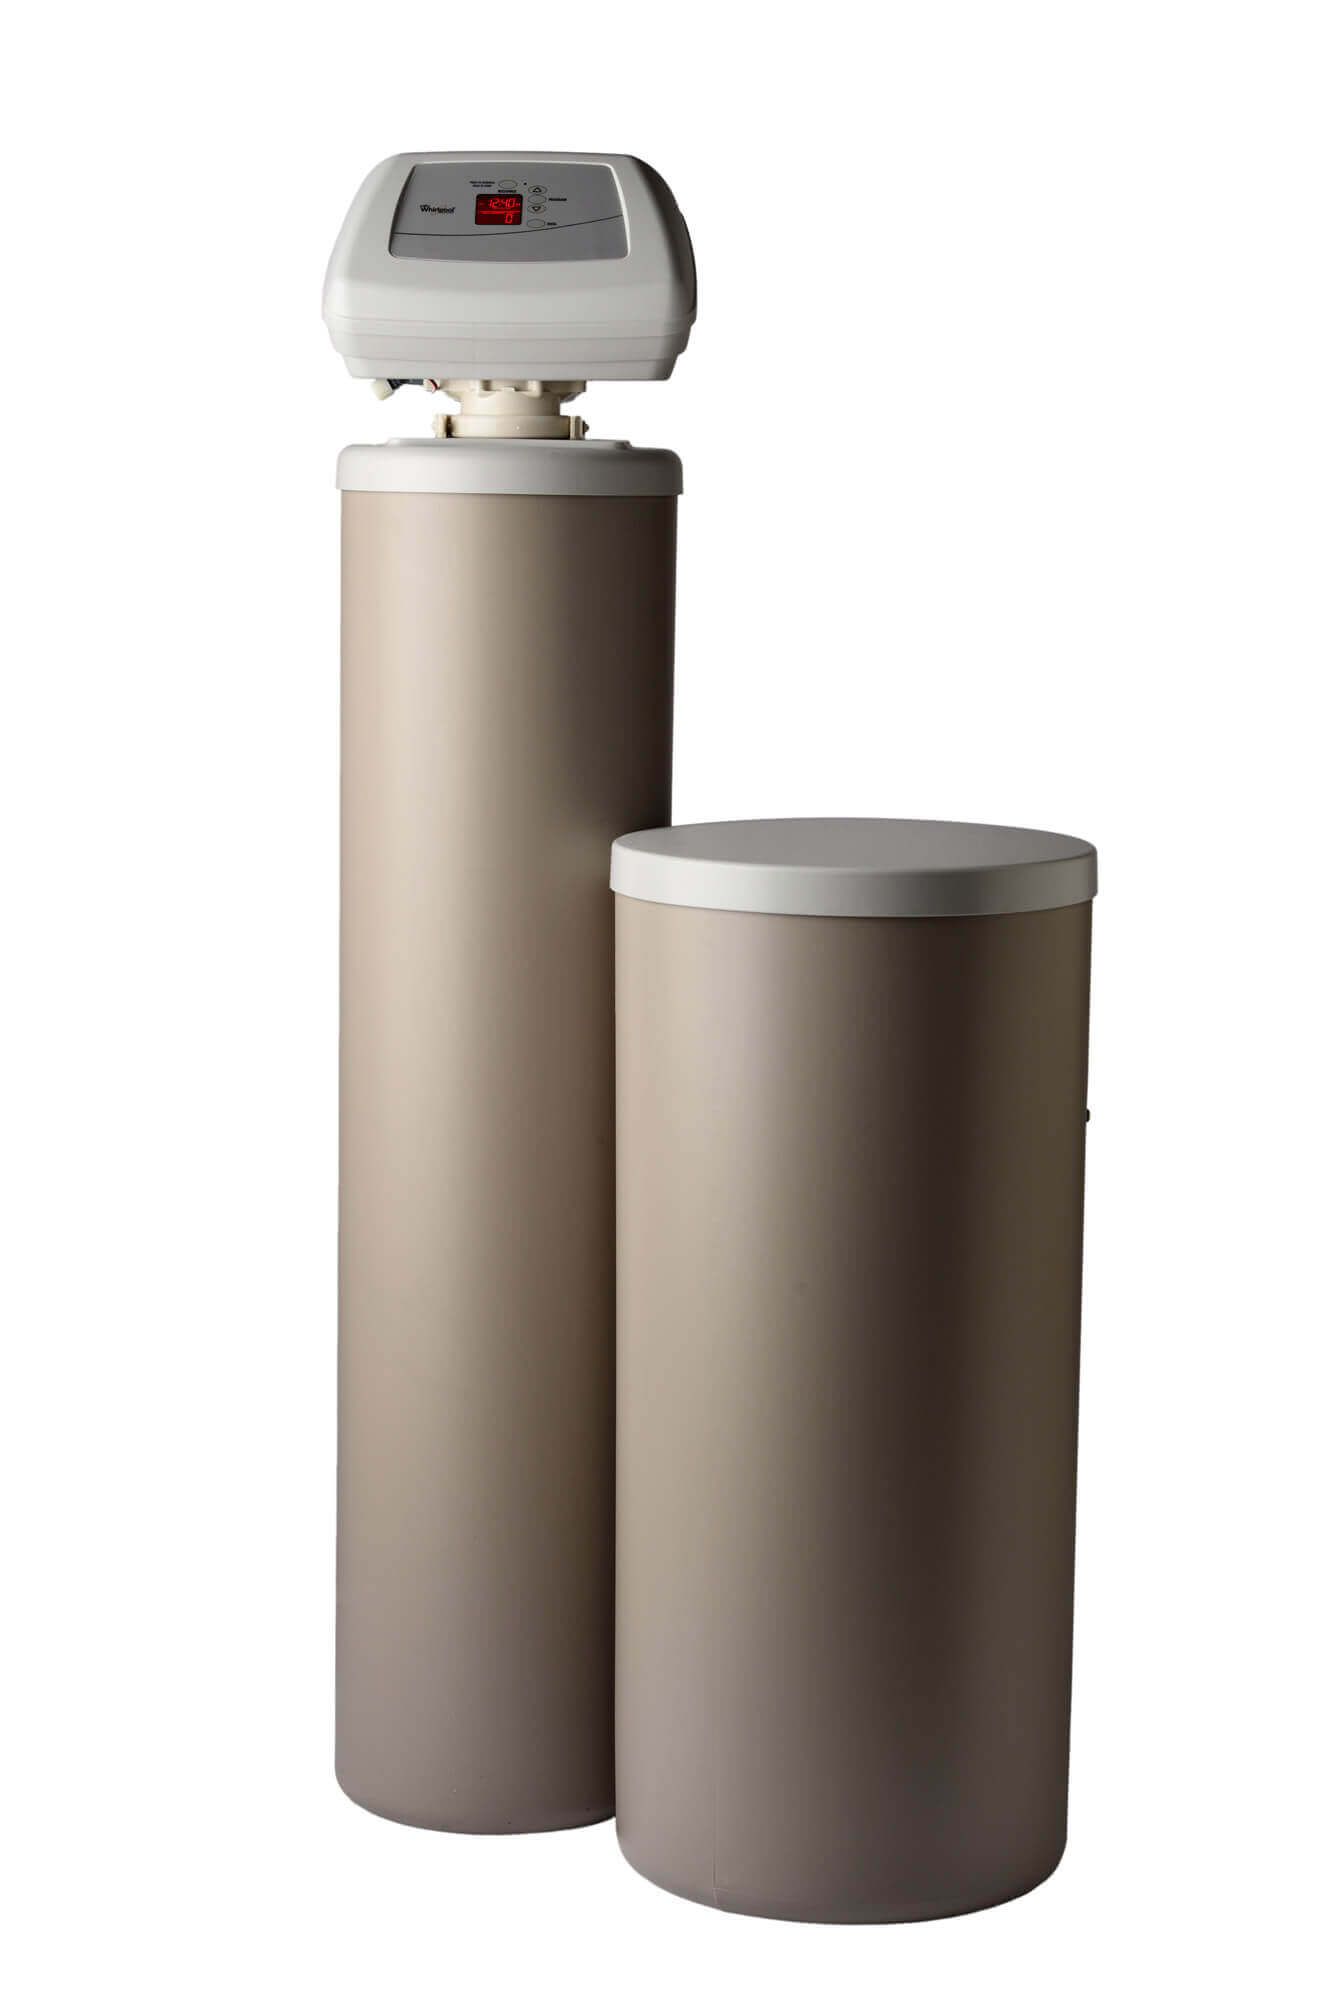 60 000 Grain Capacity Water Softener Whes60 Whirlpool